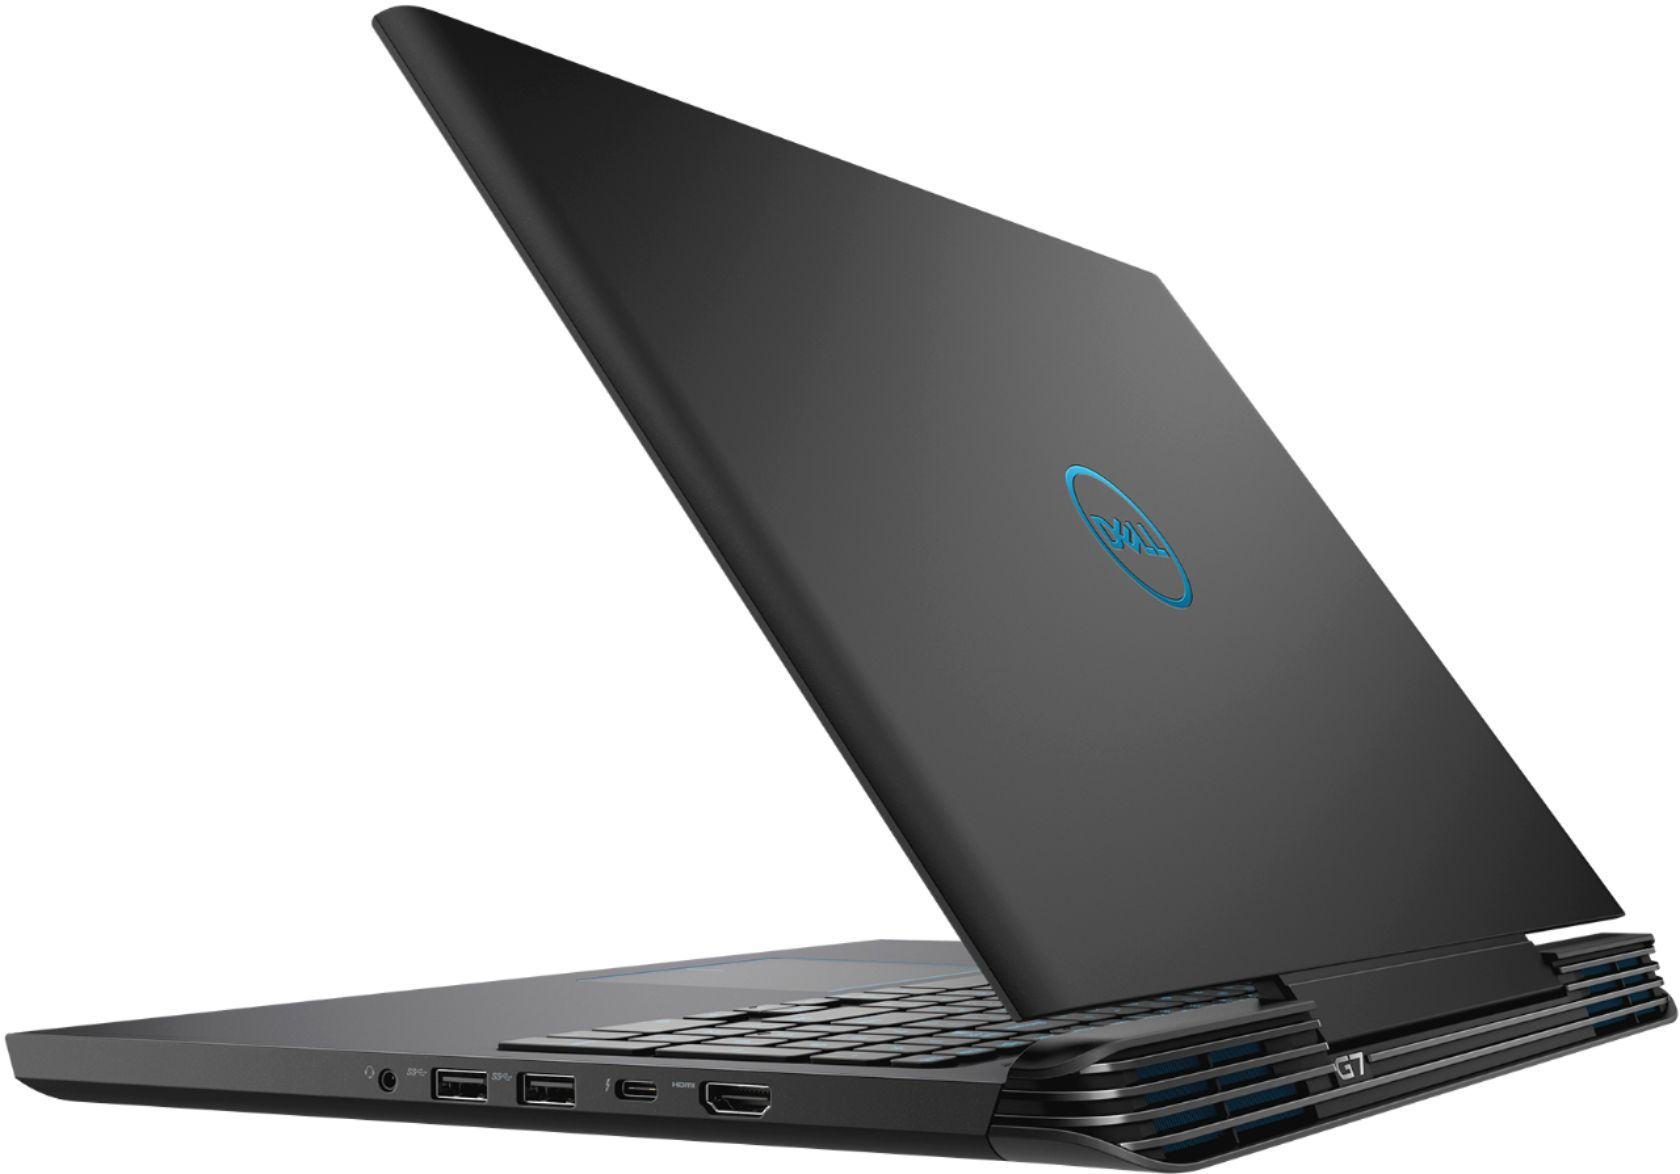 "Alt View Zoom 1. Dell - Geek Squad Certified Refurbished 15.6"" Laptop - Intel Core i7 - 16GB Memory - NVIDIA GeForce GTX 1060 - 128GB SSD+1TB HD - Licorice Black."